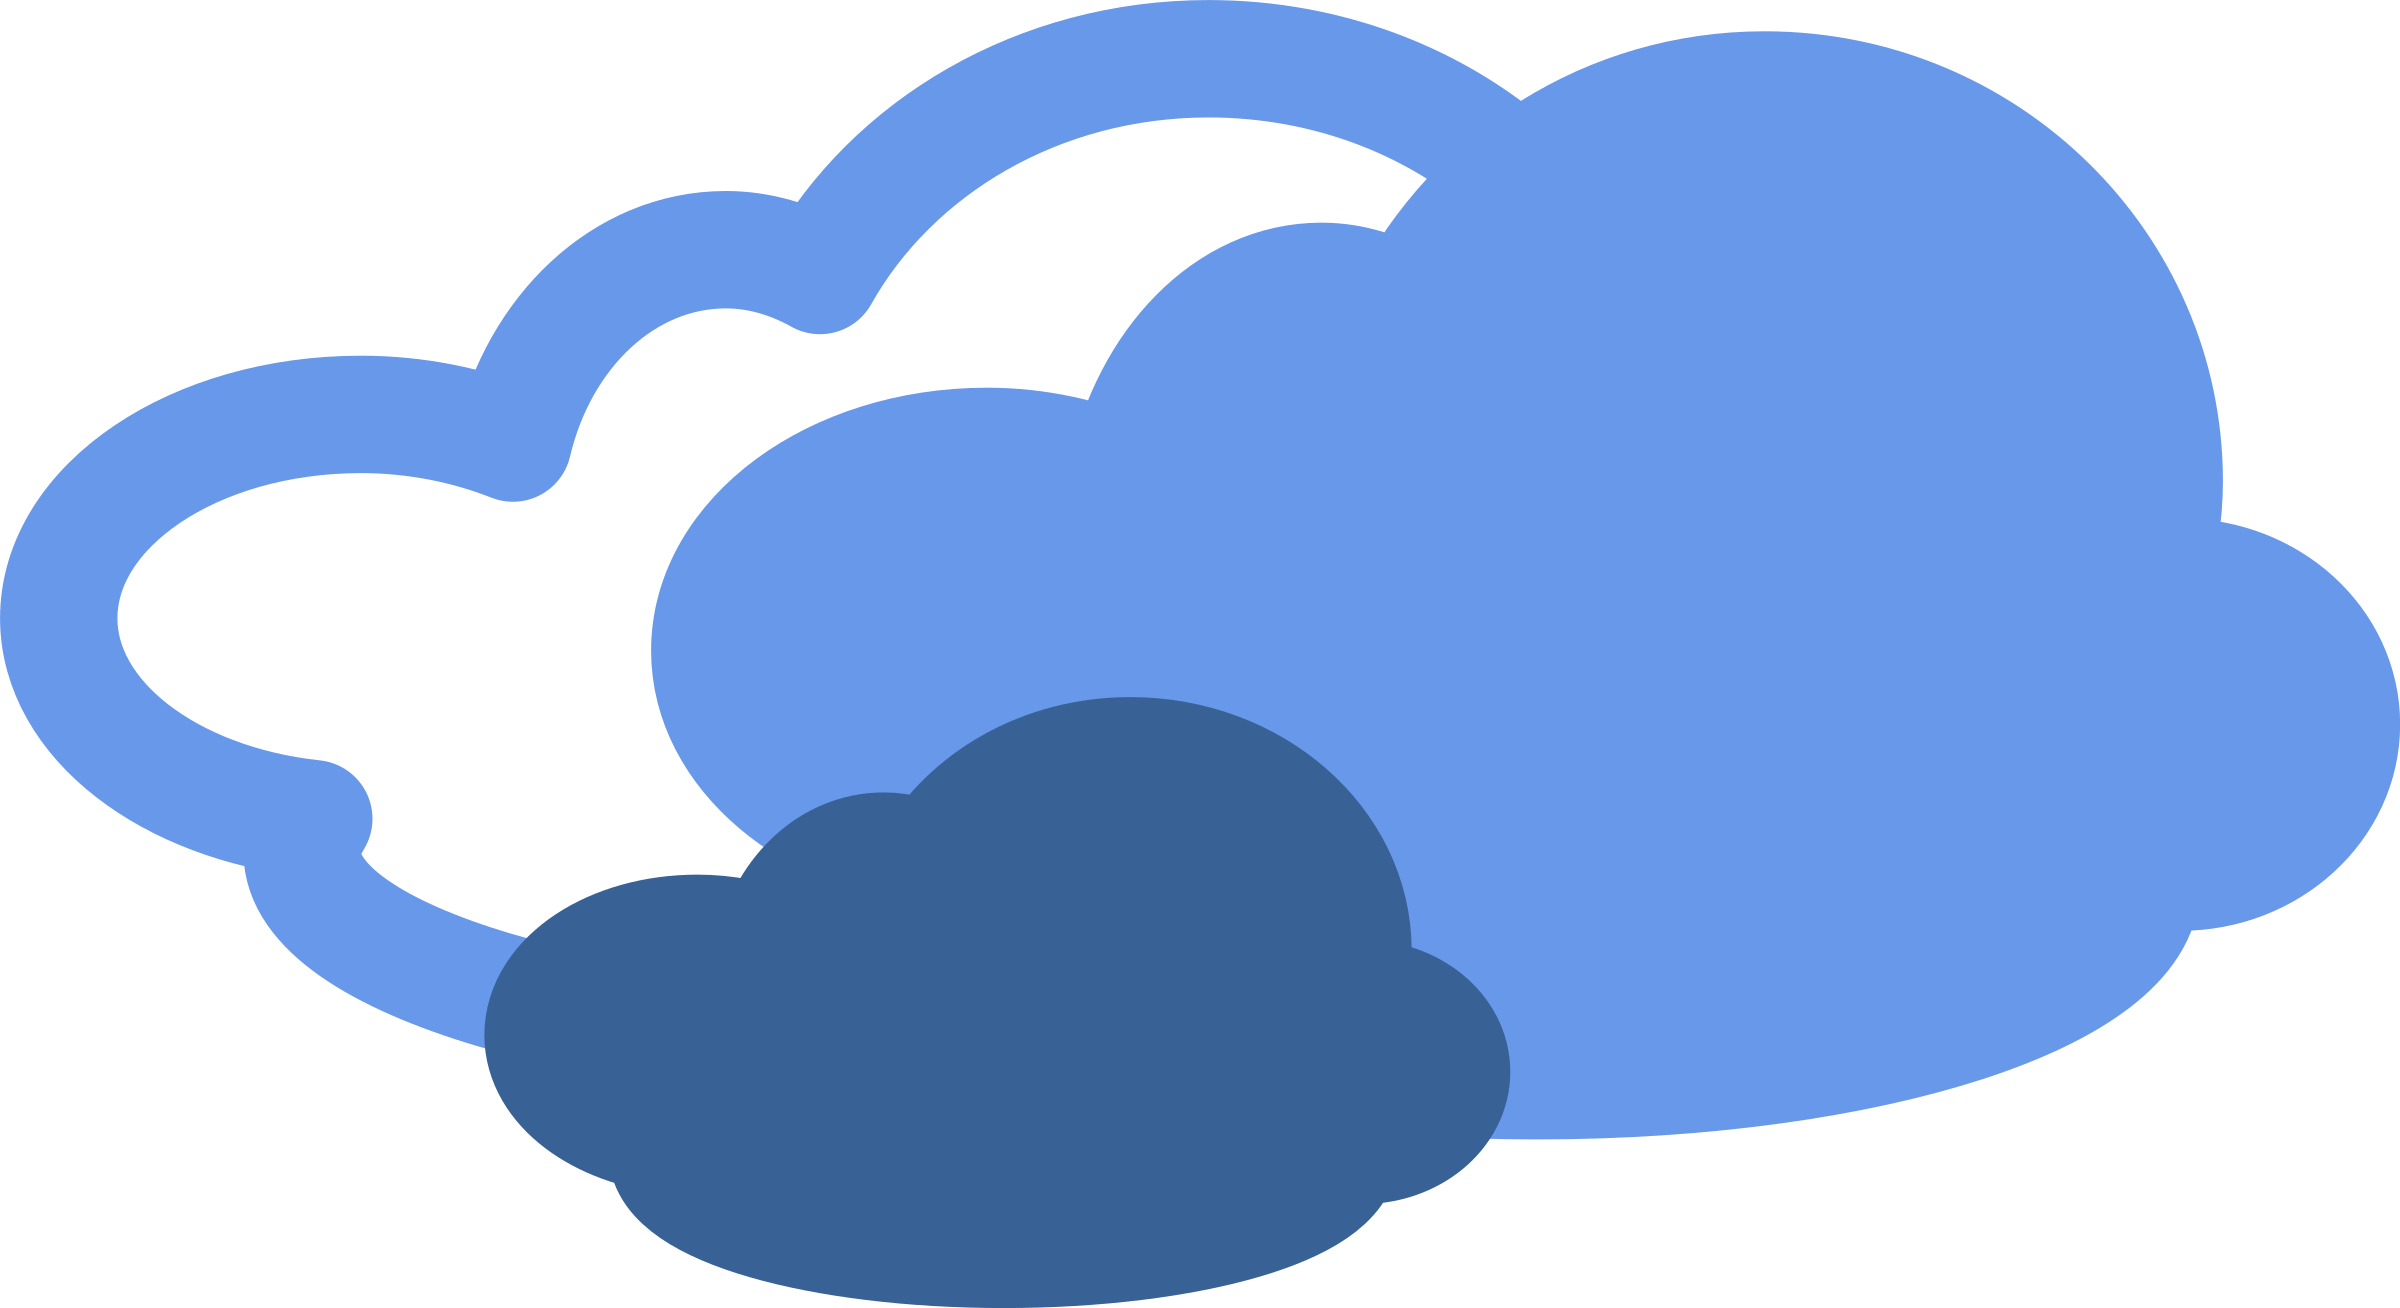 Simple symbols big image. Fog clipart breezy weather